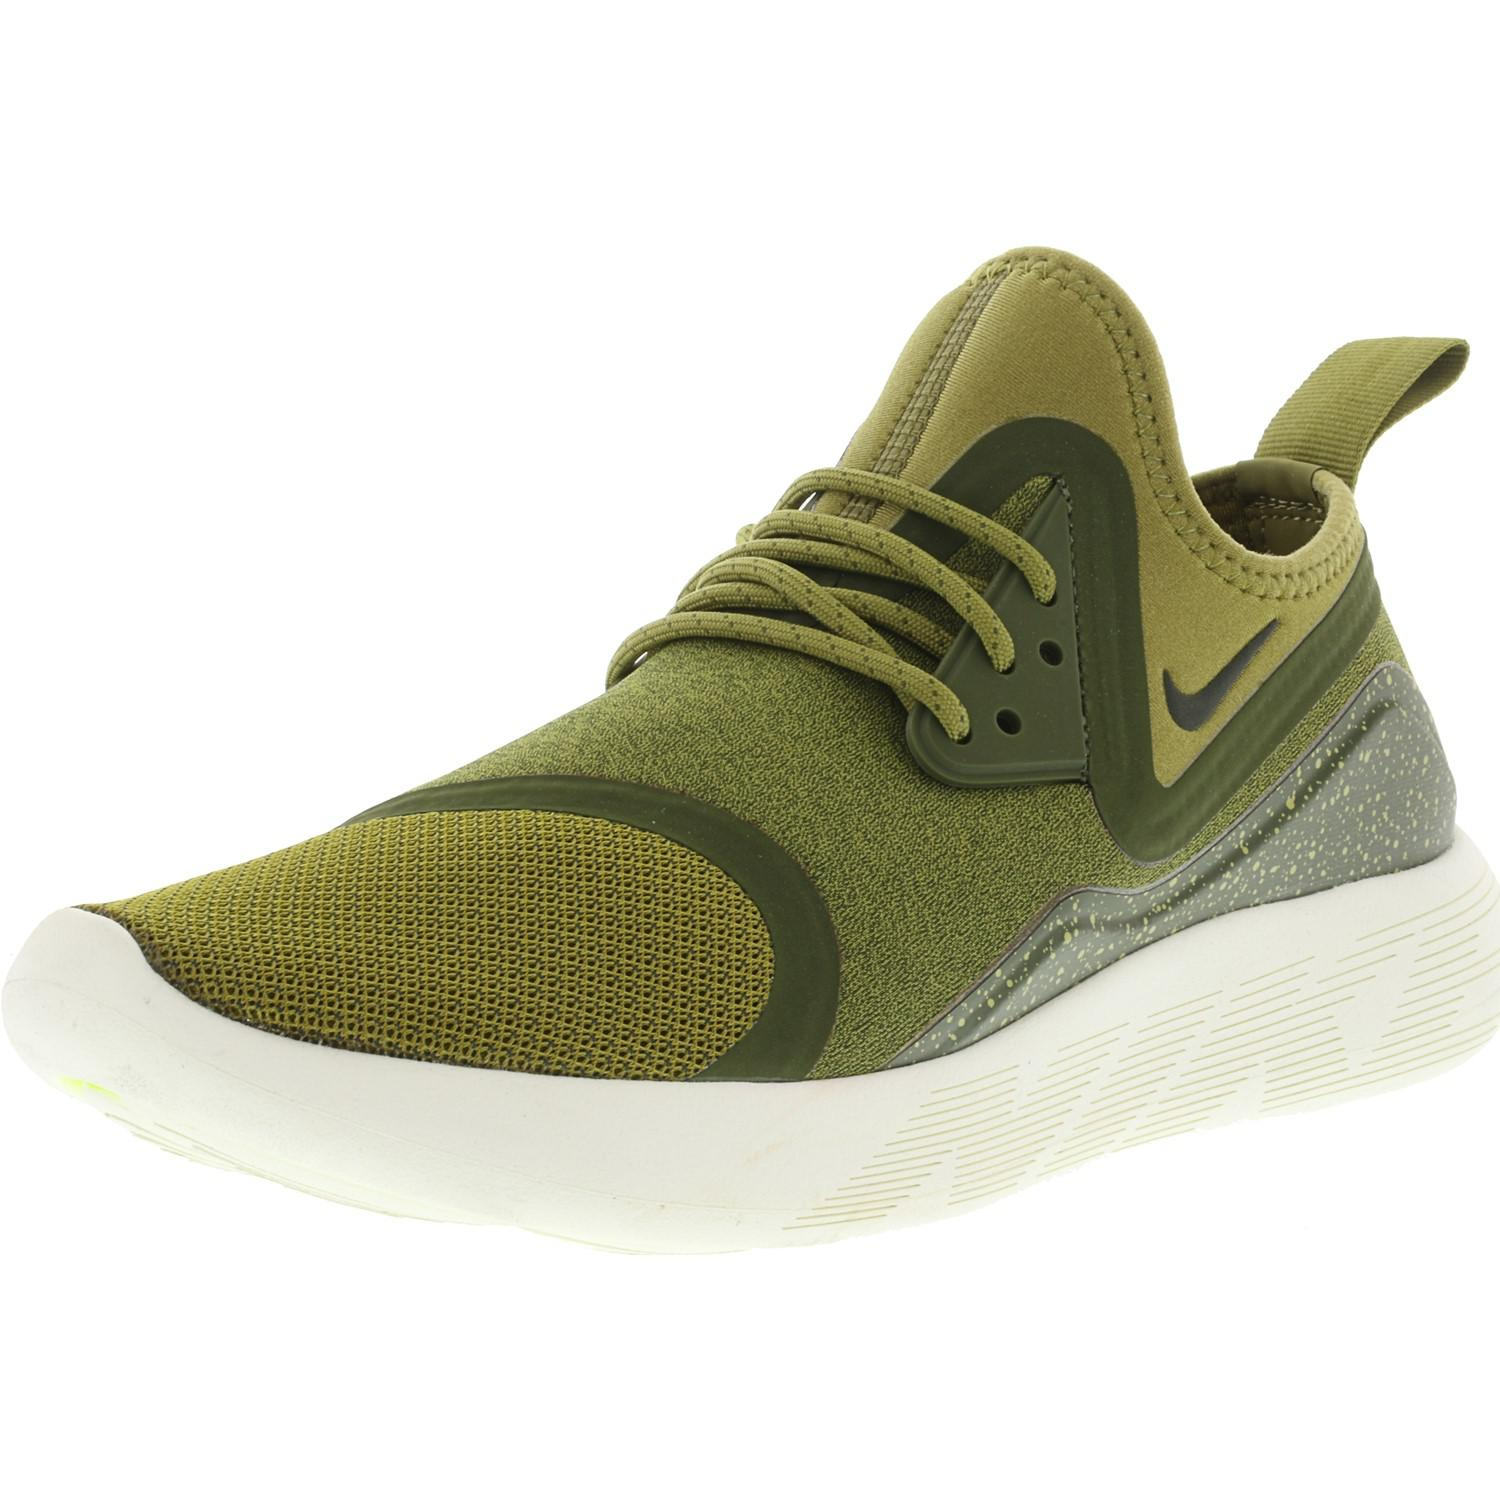 Lyst Nike Lunarcharge Essential Ankle high Fabric Running Shoe